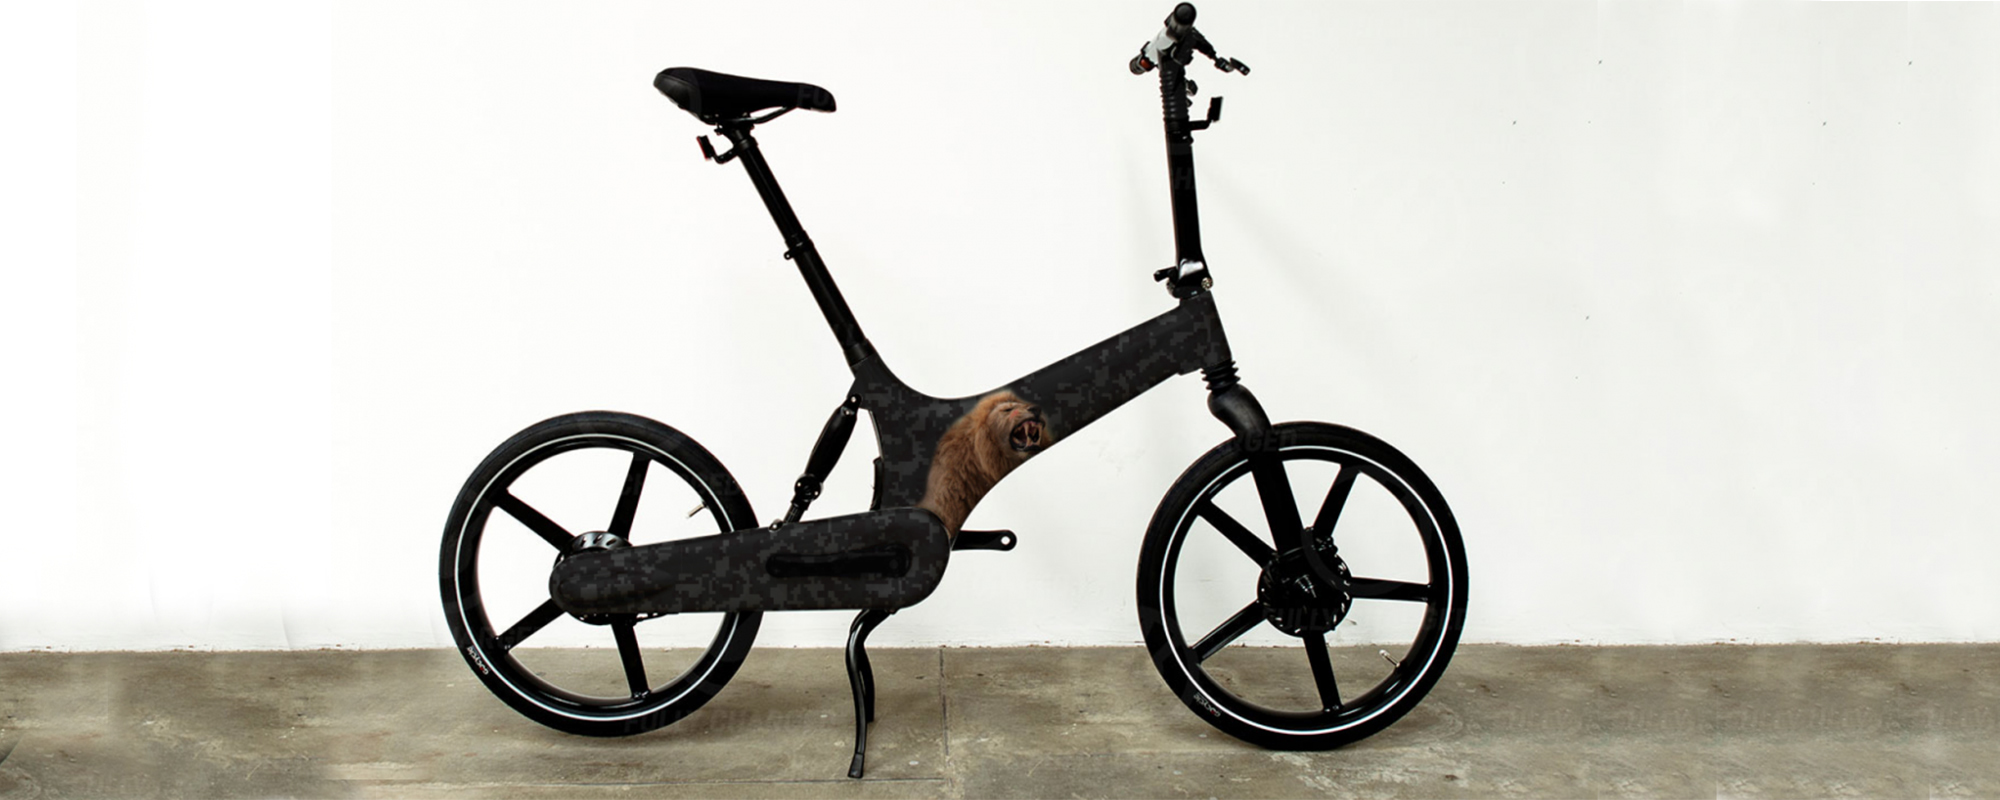 Image of the Gocycle electric bike